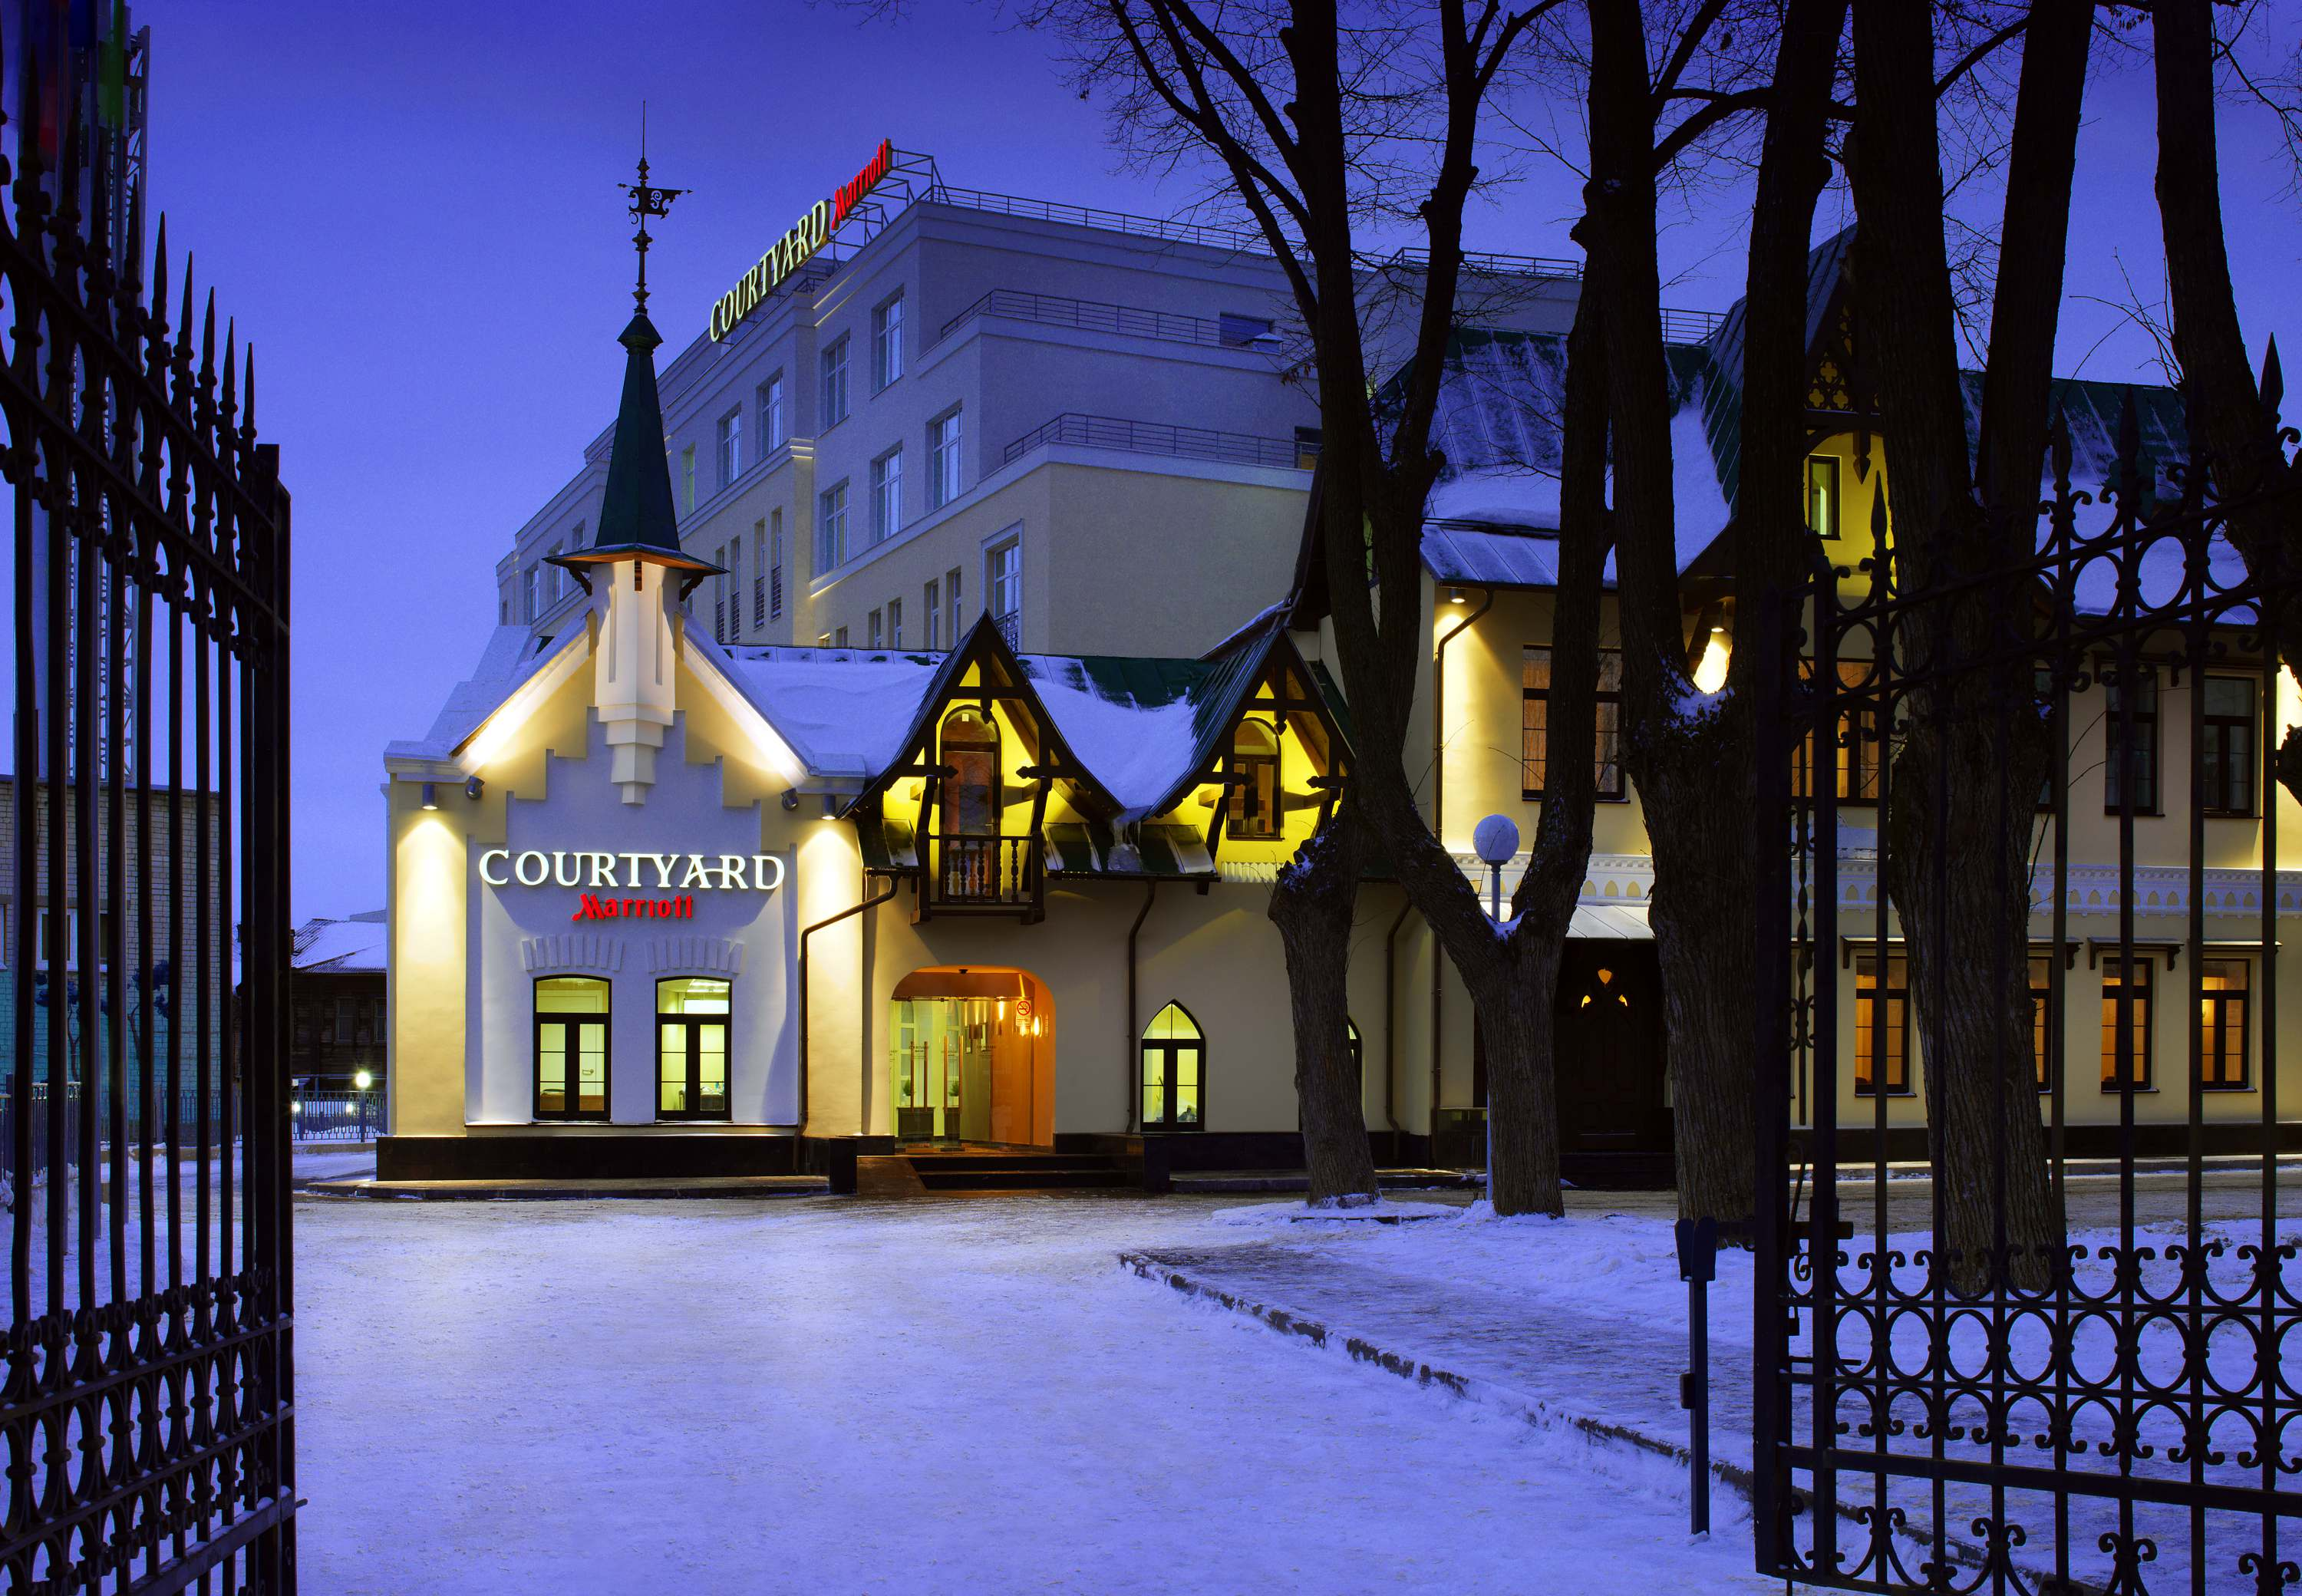 Courtyard by Marriott Nizhny Novgorod City Center